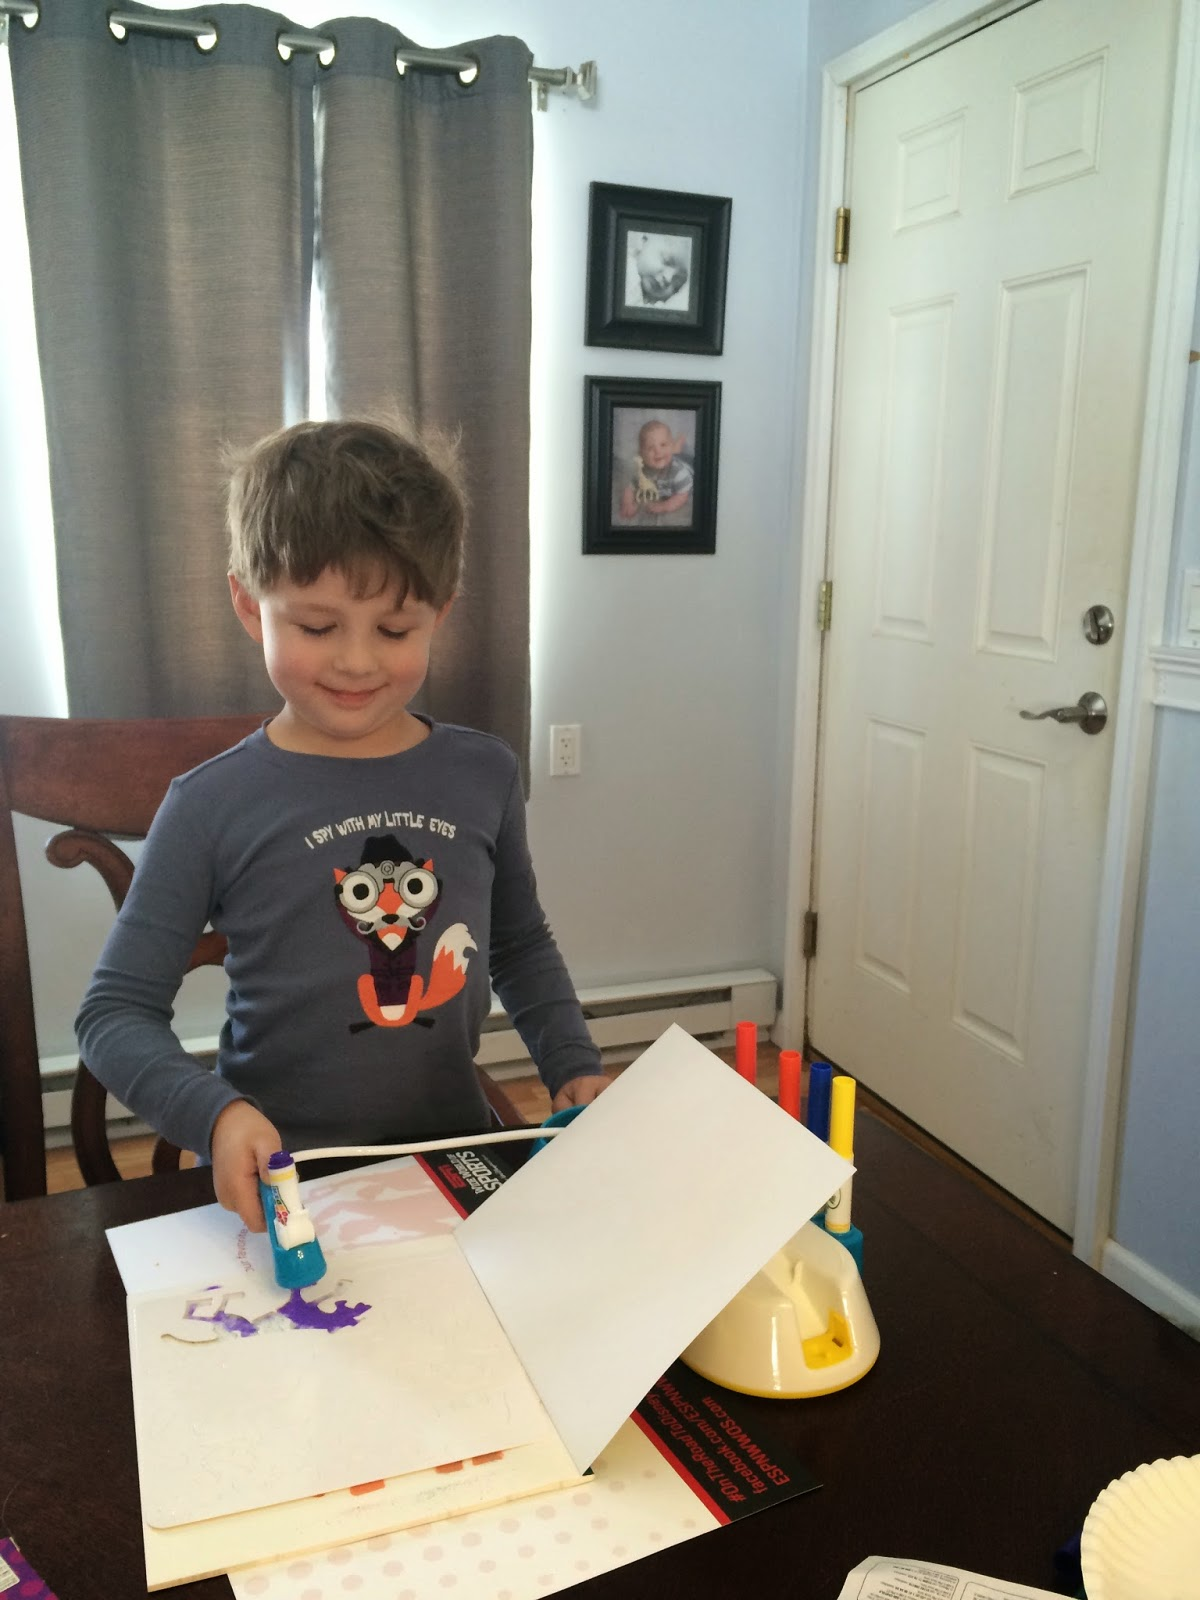 crayola color wonder mess free airbrush review 2014 holiday gift